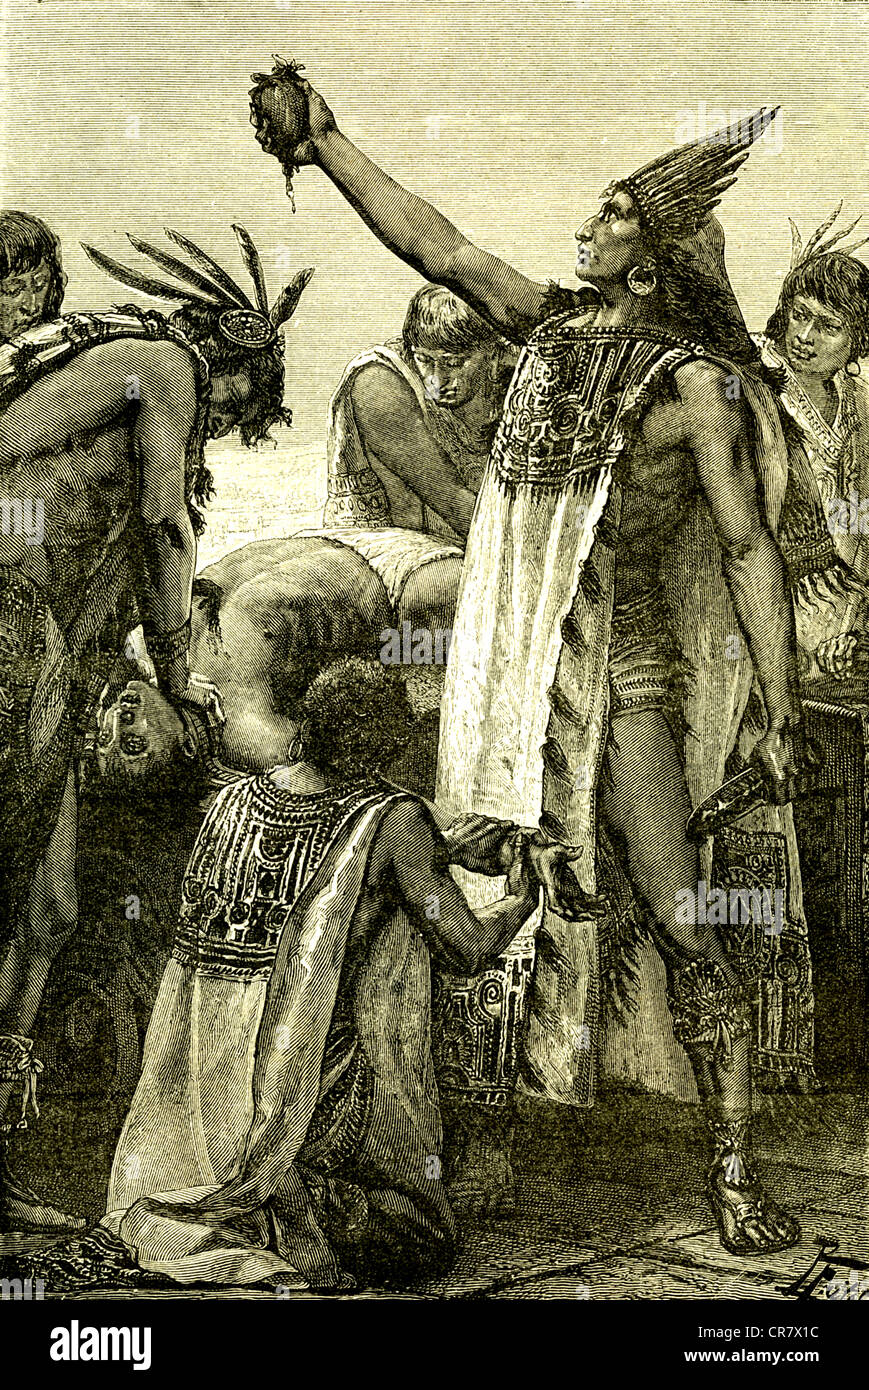 Human sacrifice, priest showing the heart, Mexico, historical illustration, 1869 Stock Photo